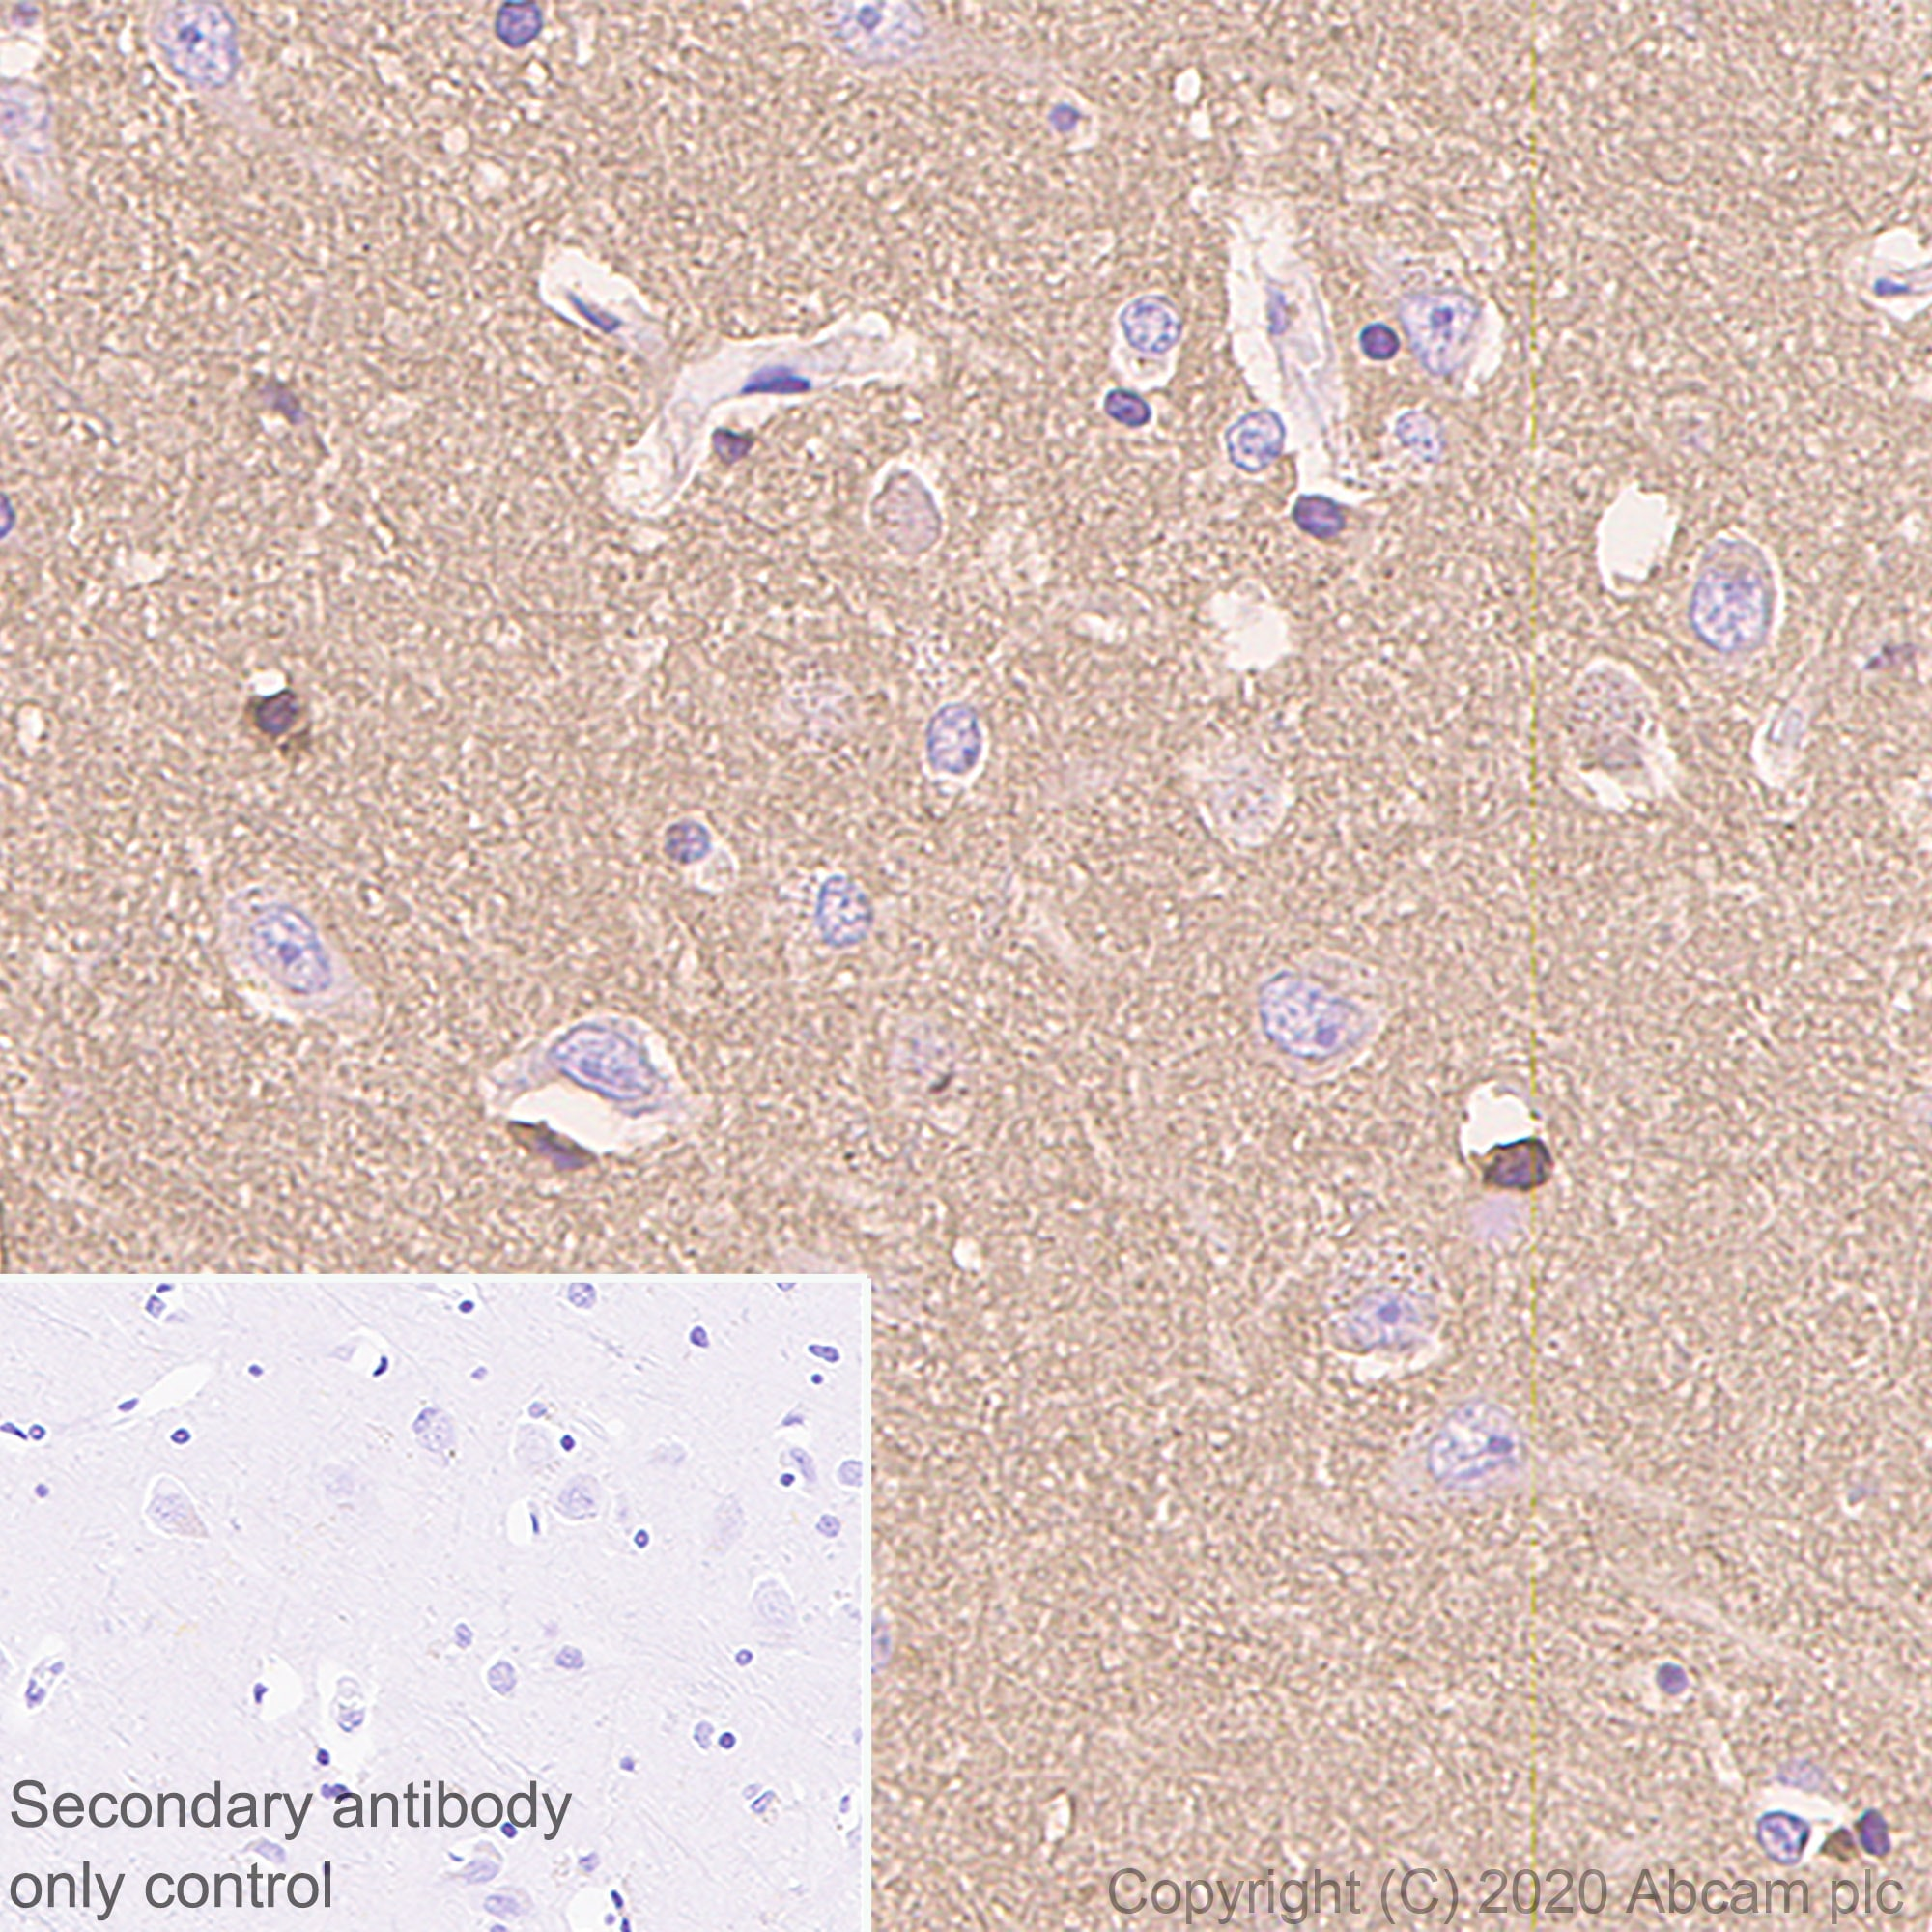 Immunohistochemistry (Formalin/PFA-fixed paraffin-embedded sections) - Anti-Prion protein PrP antibody [EP1802Y] - BSA and Azide free (ab238428)